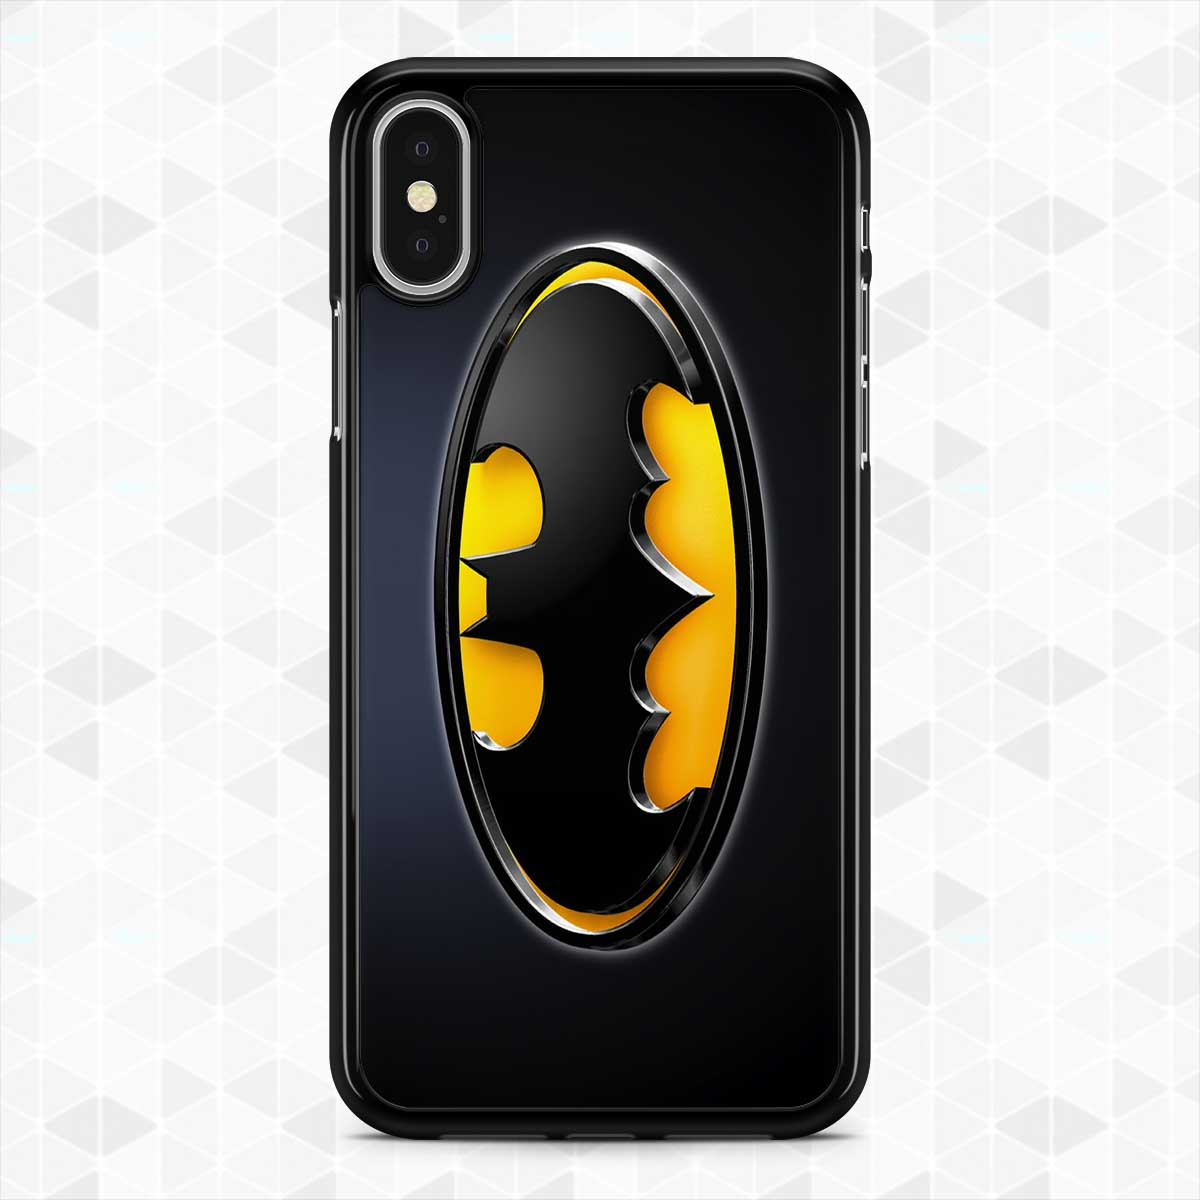 los angeles 16d81 bfc0d New!Batman!Logo79XS Phone Case iPhone XS Max X 8 Plus 7+ XR 6s+ Case  Samsung S9+ S9 S8+ S8 Note 9 8 5 Cases